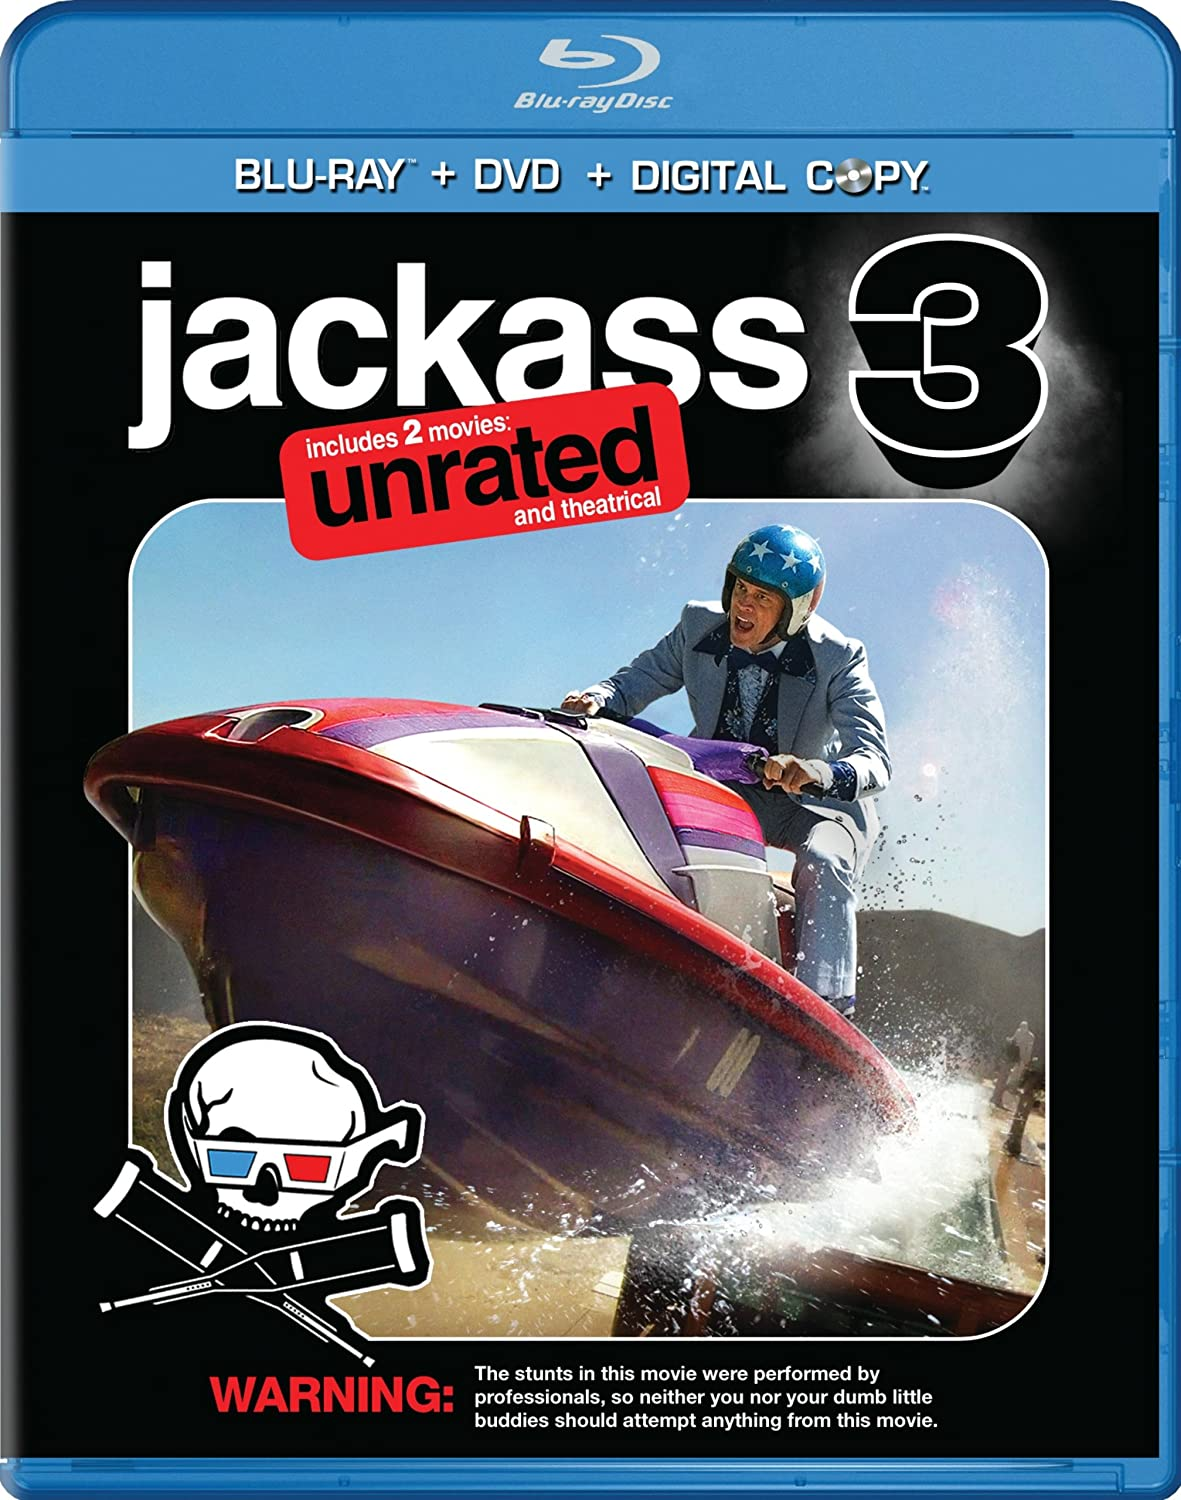 Jackass 3 5 download free